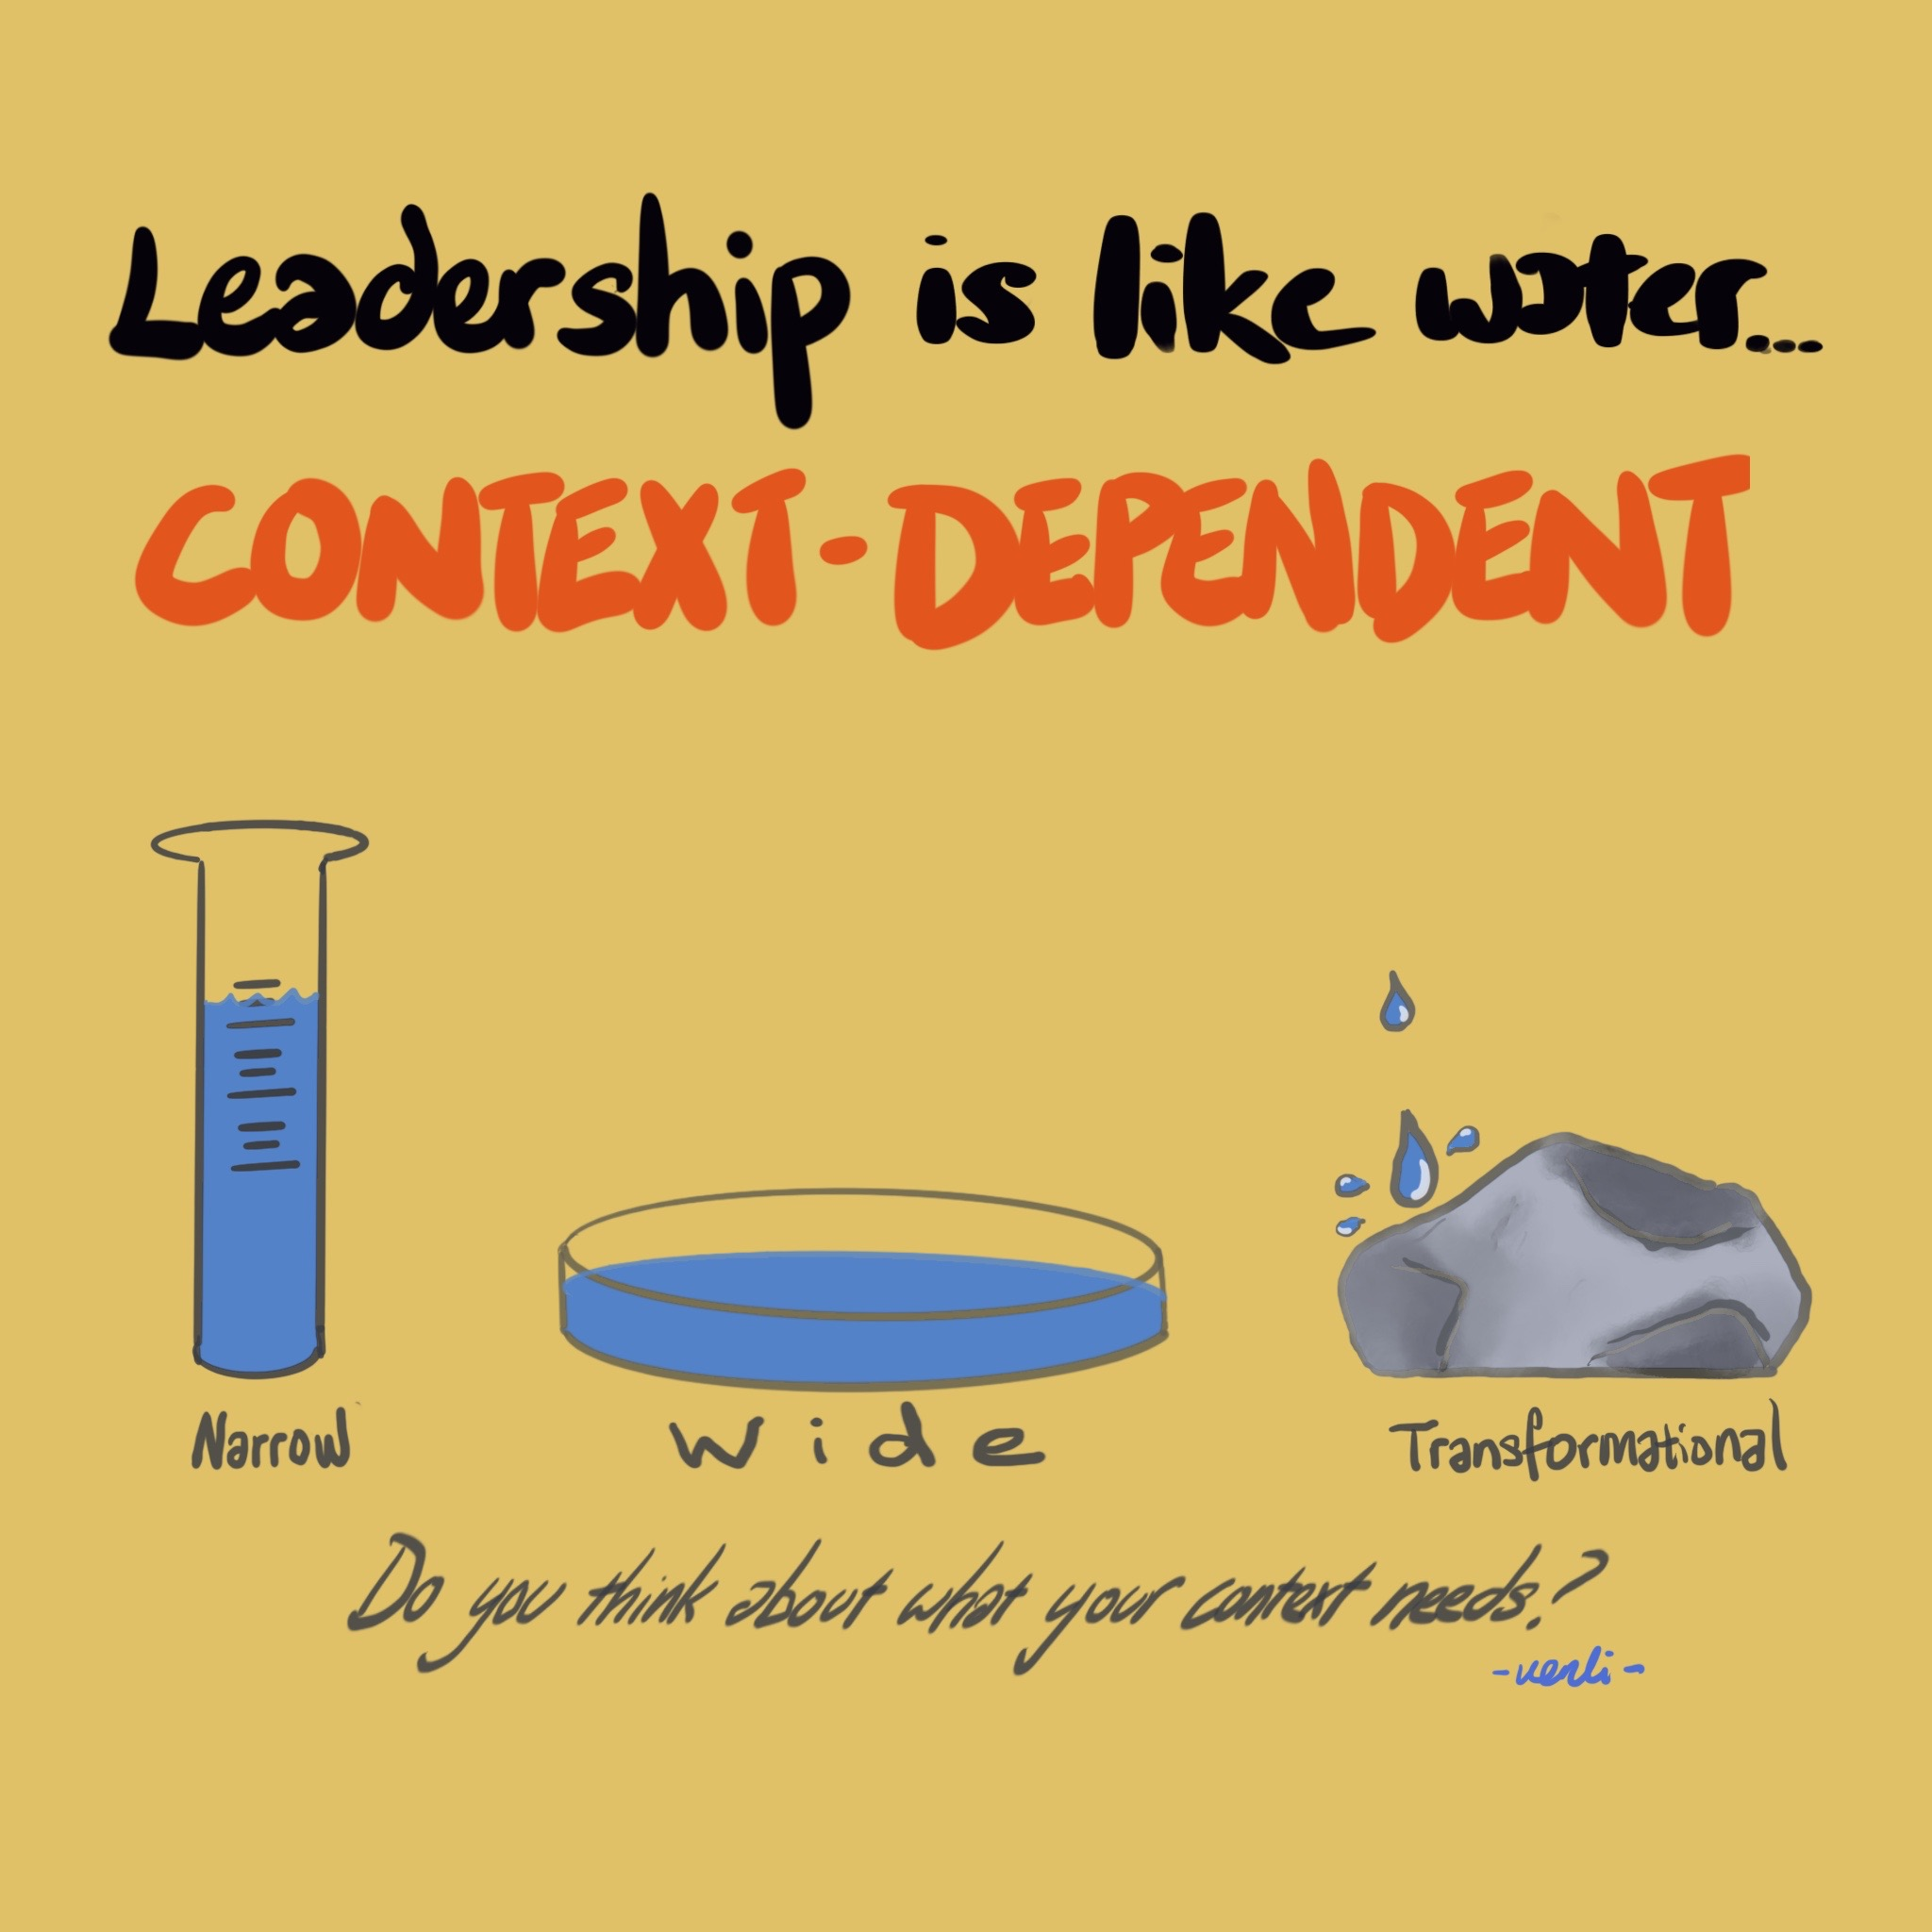 Leadership is context dependent Image (1/1)